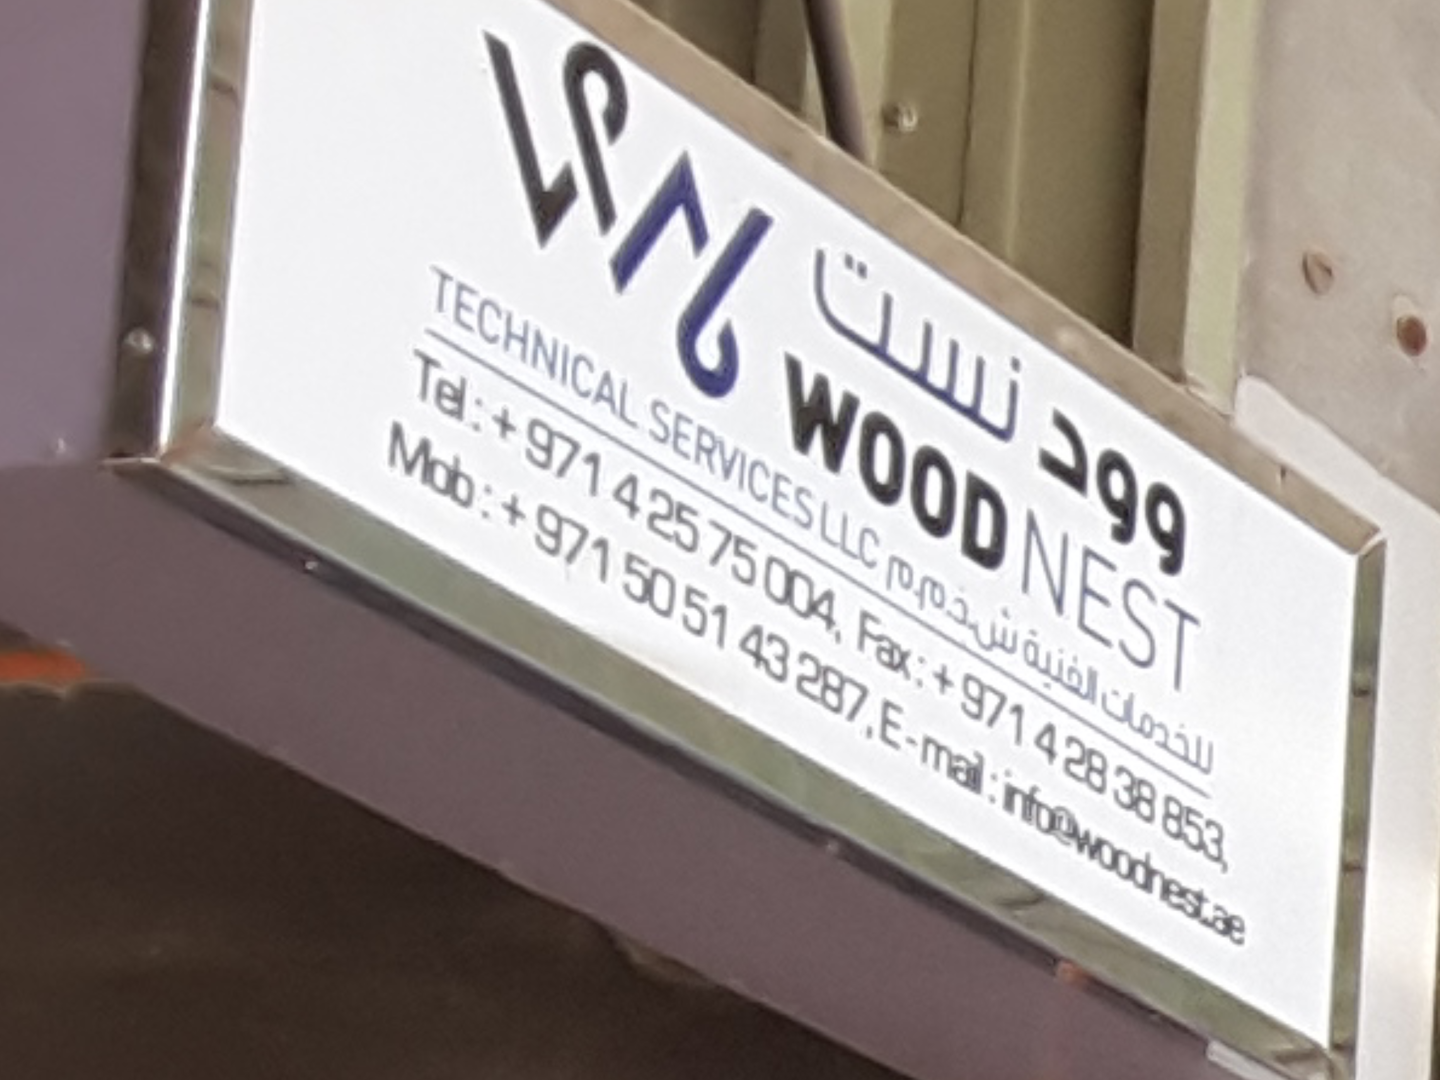 HiDubai-business-wood-nest-technical-service-home-handyman-maintenance-services-al-qusais-industrial-1-dubai-2